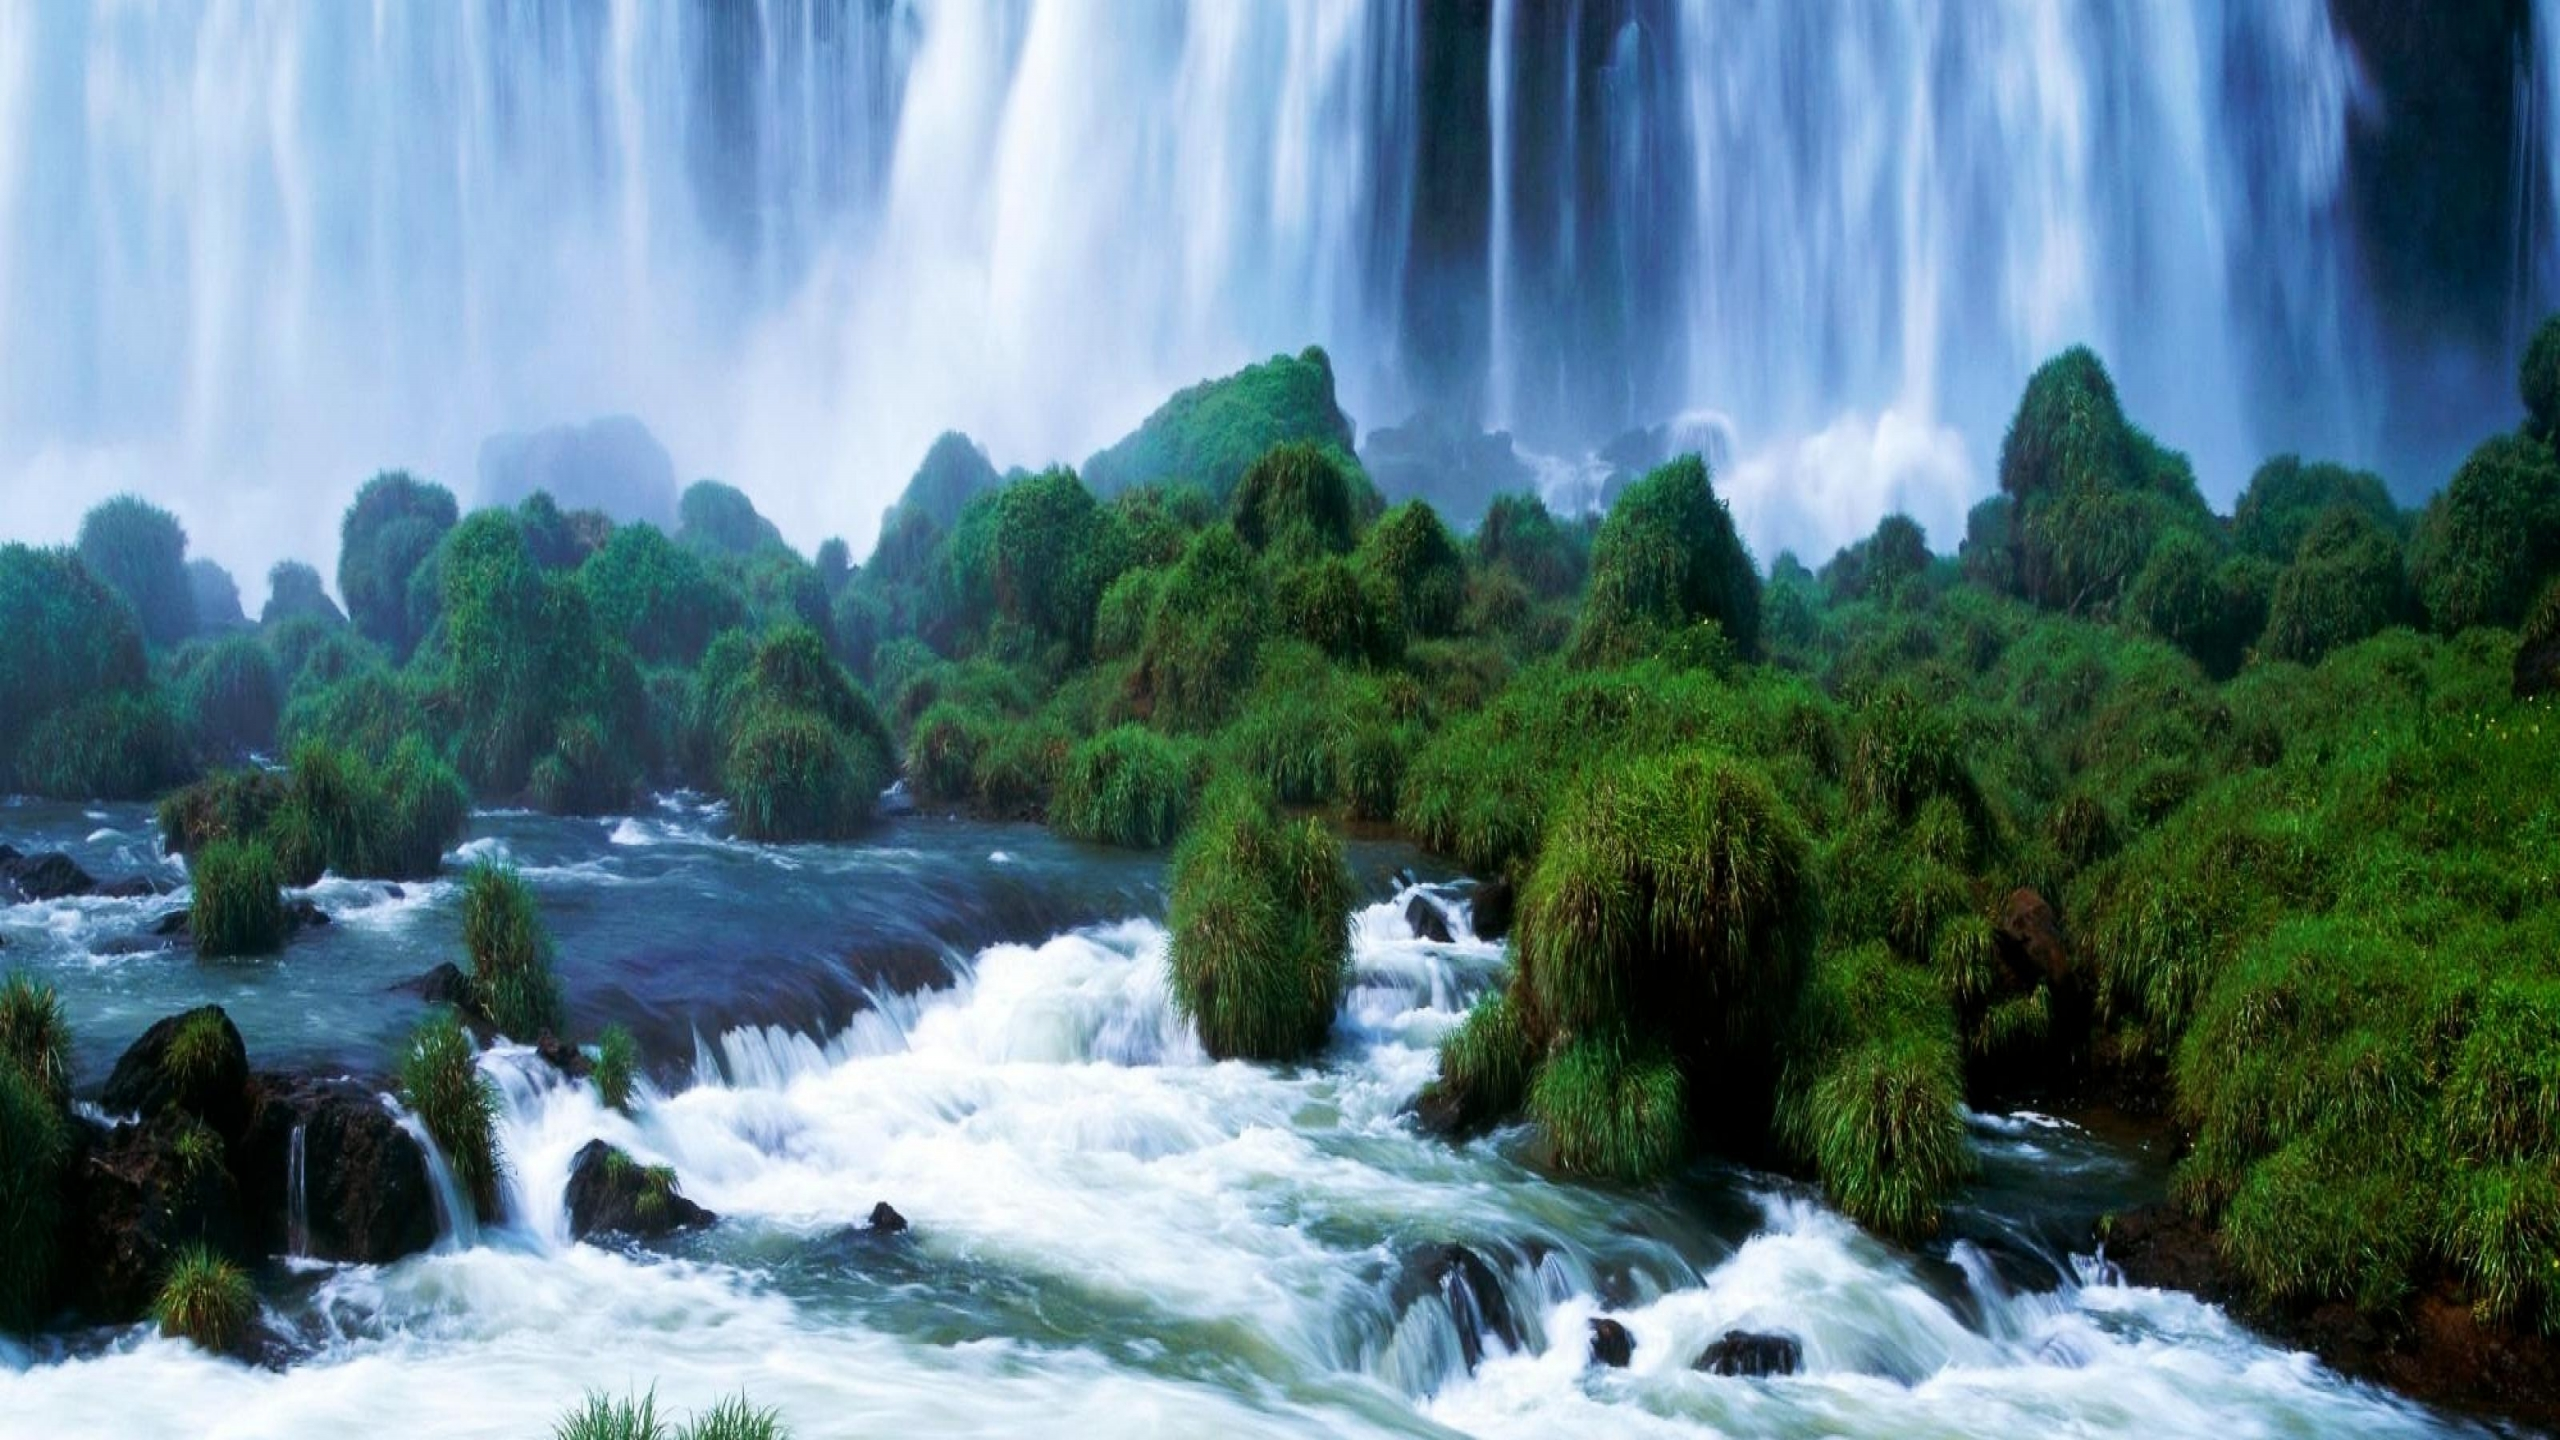 Neture Wallpaper Hd Download: River And Waterfall Image